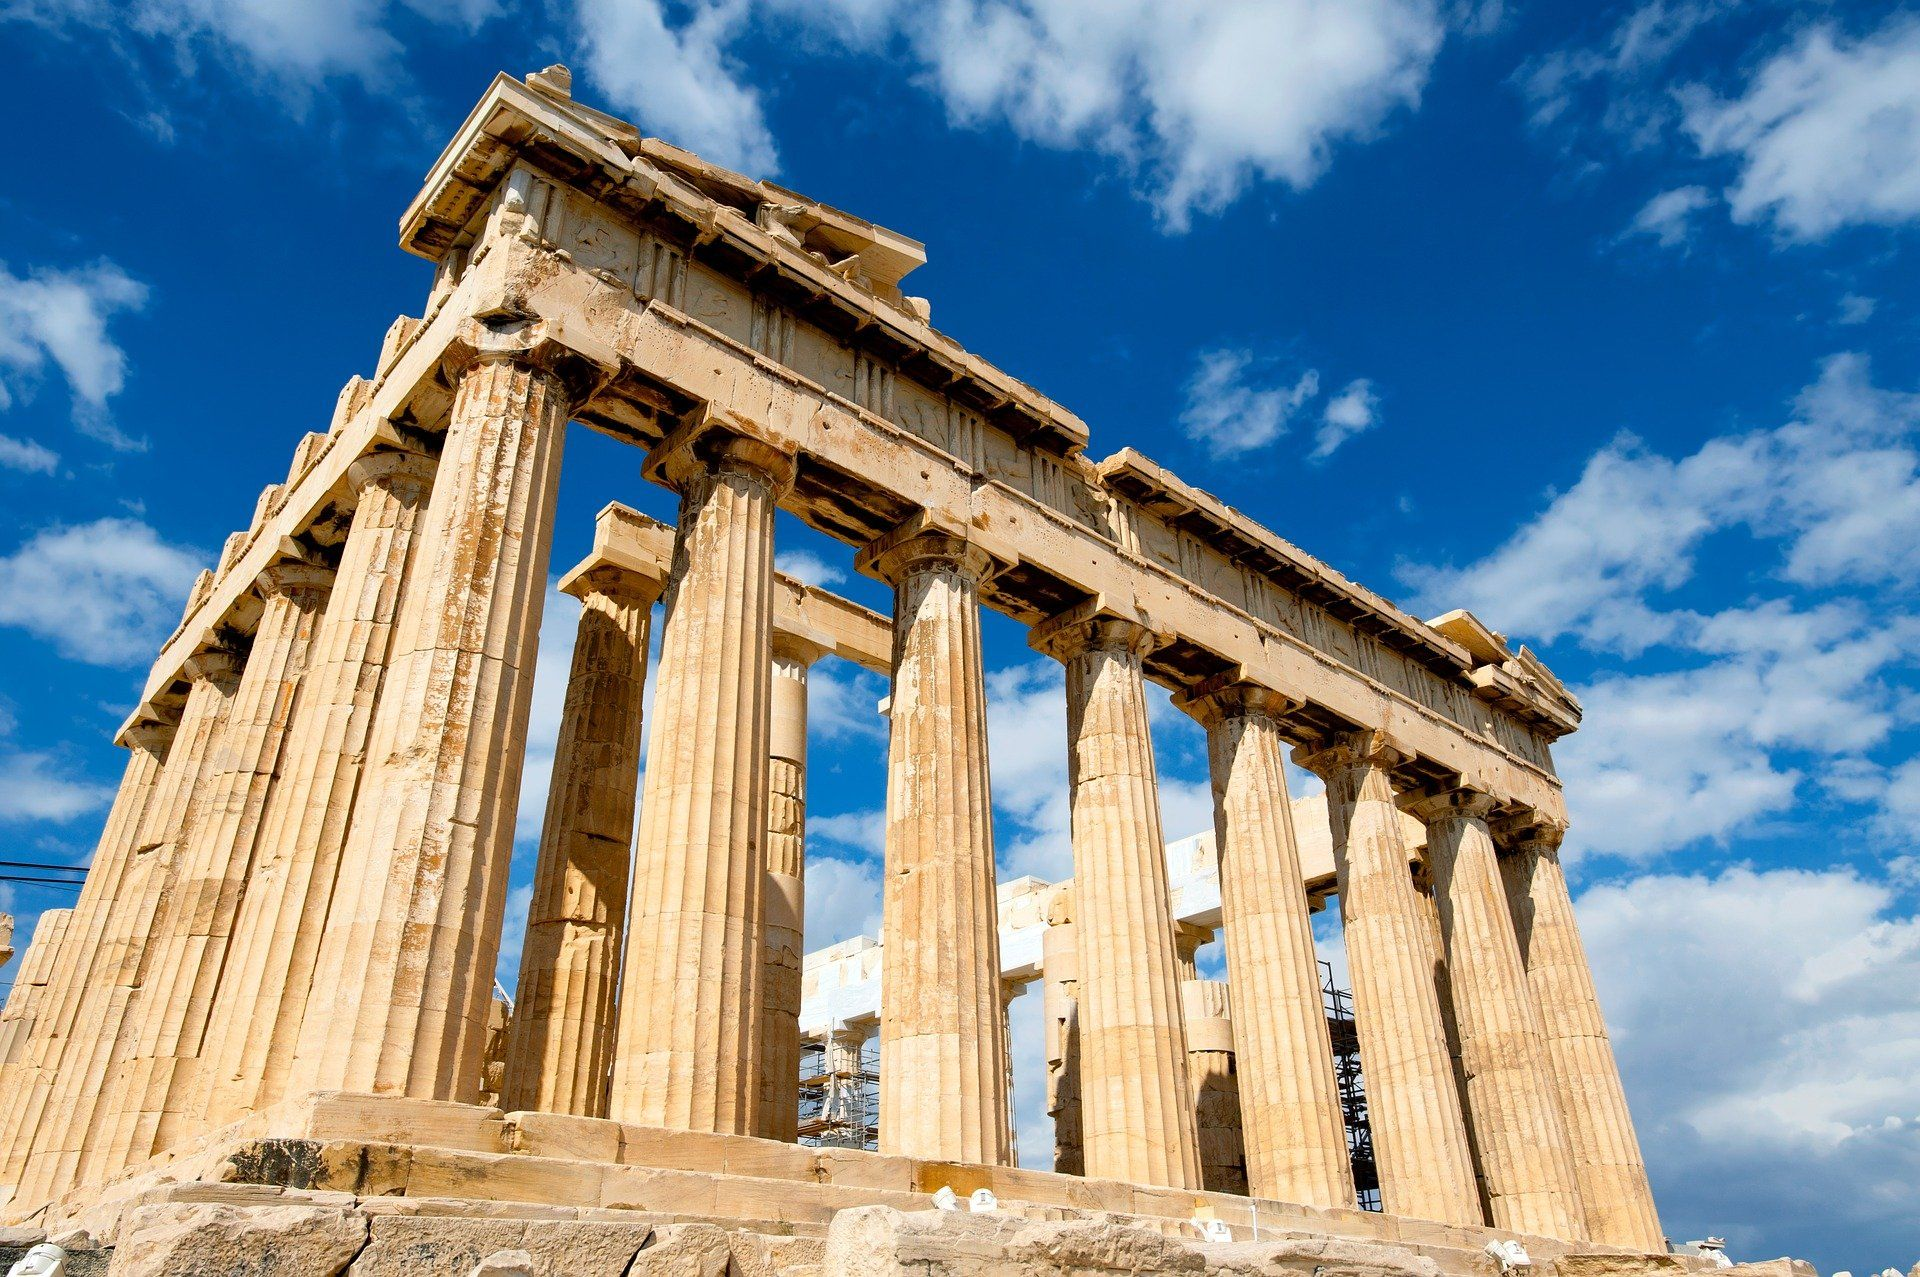 Parthenon from ancient greek times, building of columns